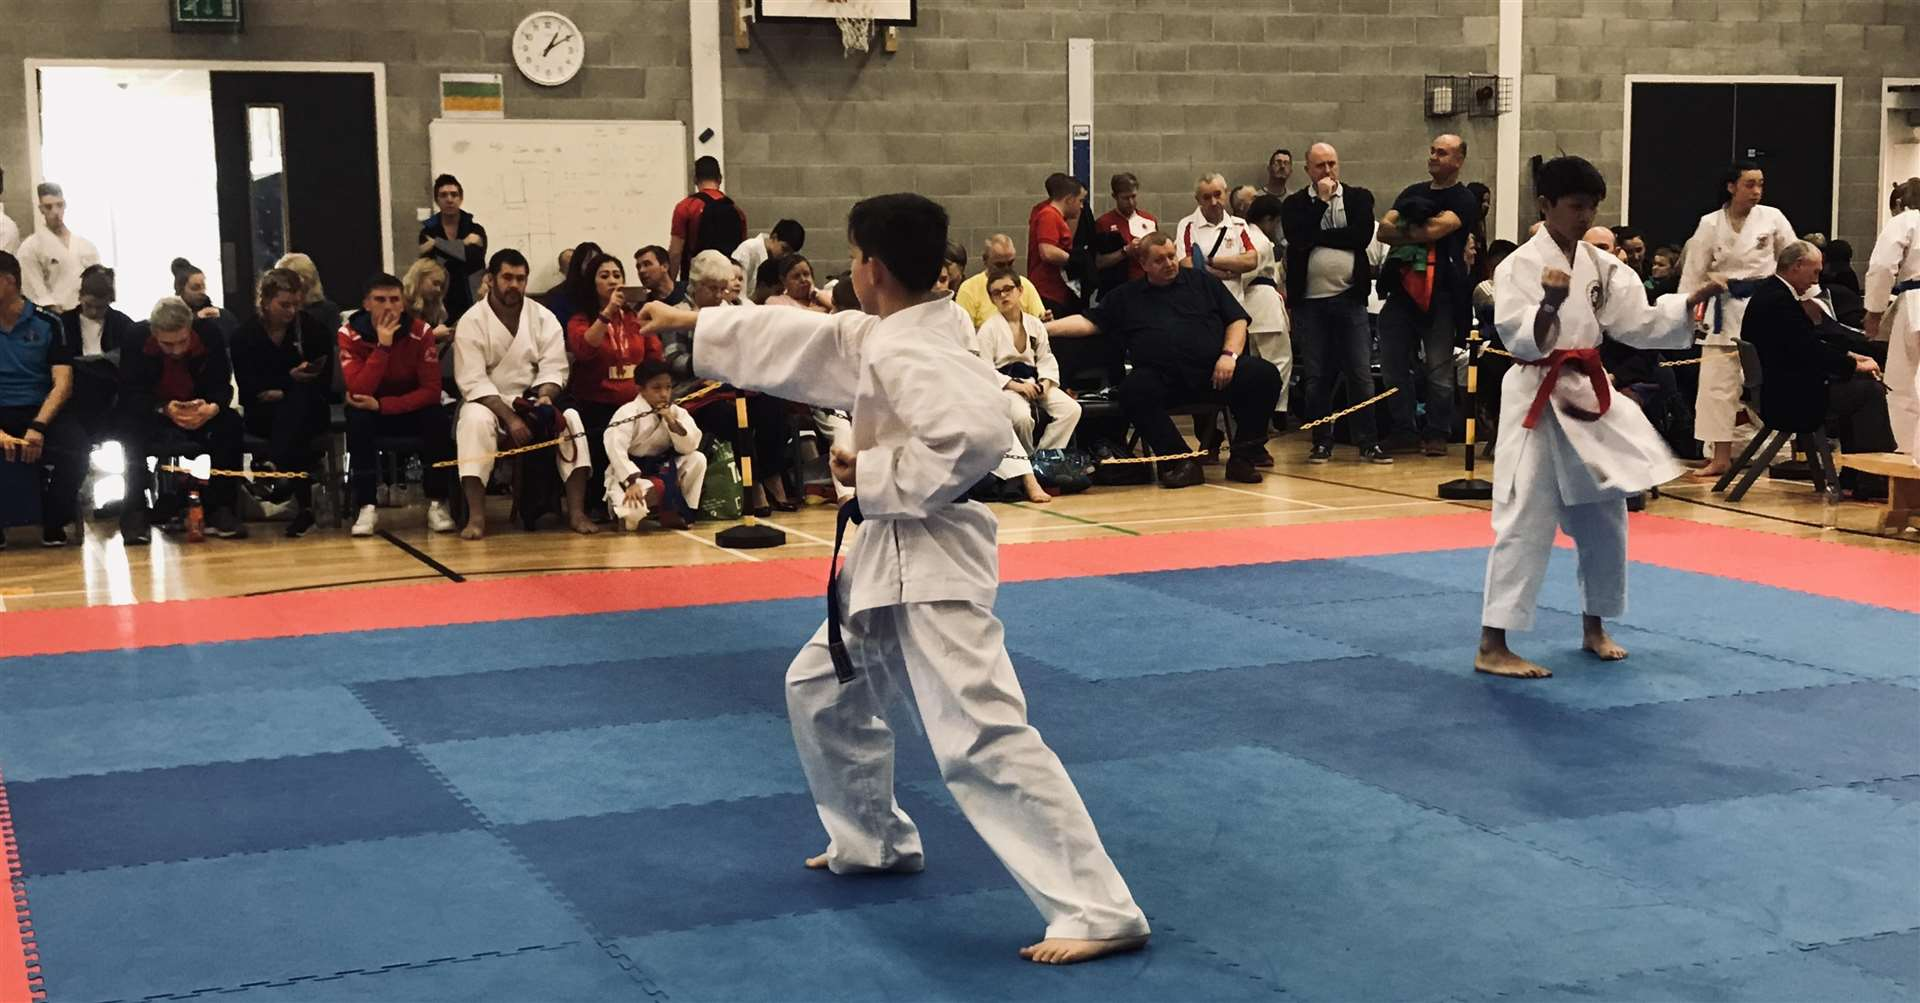 Damon Hewitt in Shito-ryu kata action against his opponent (6285028)